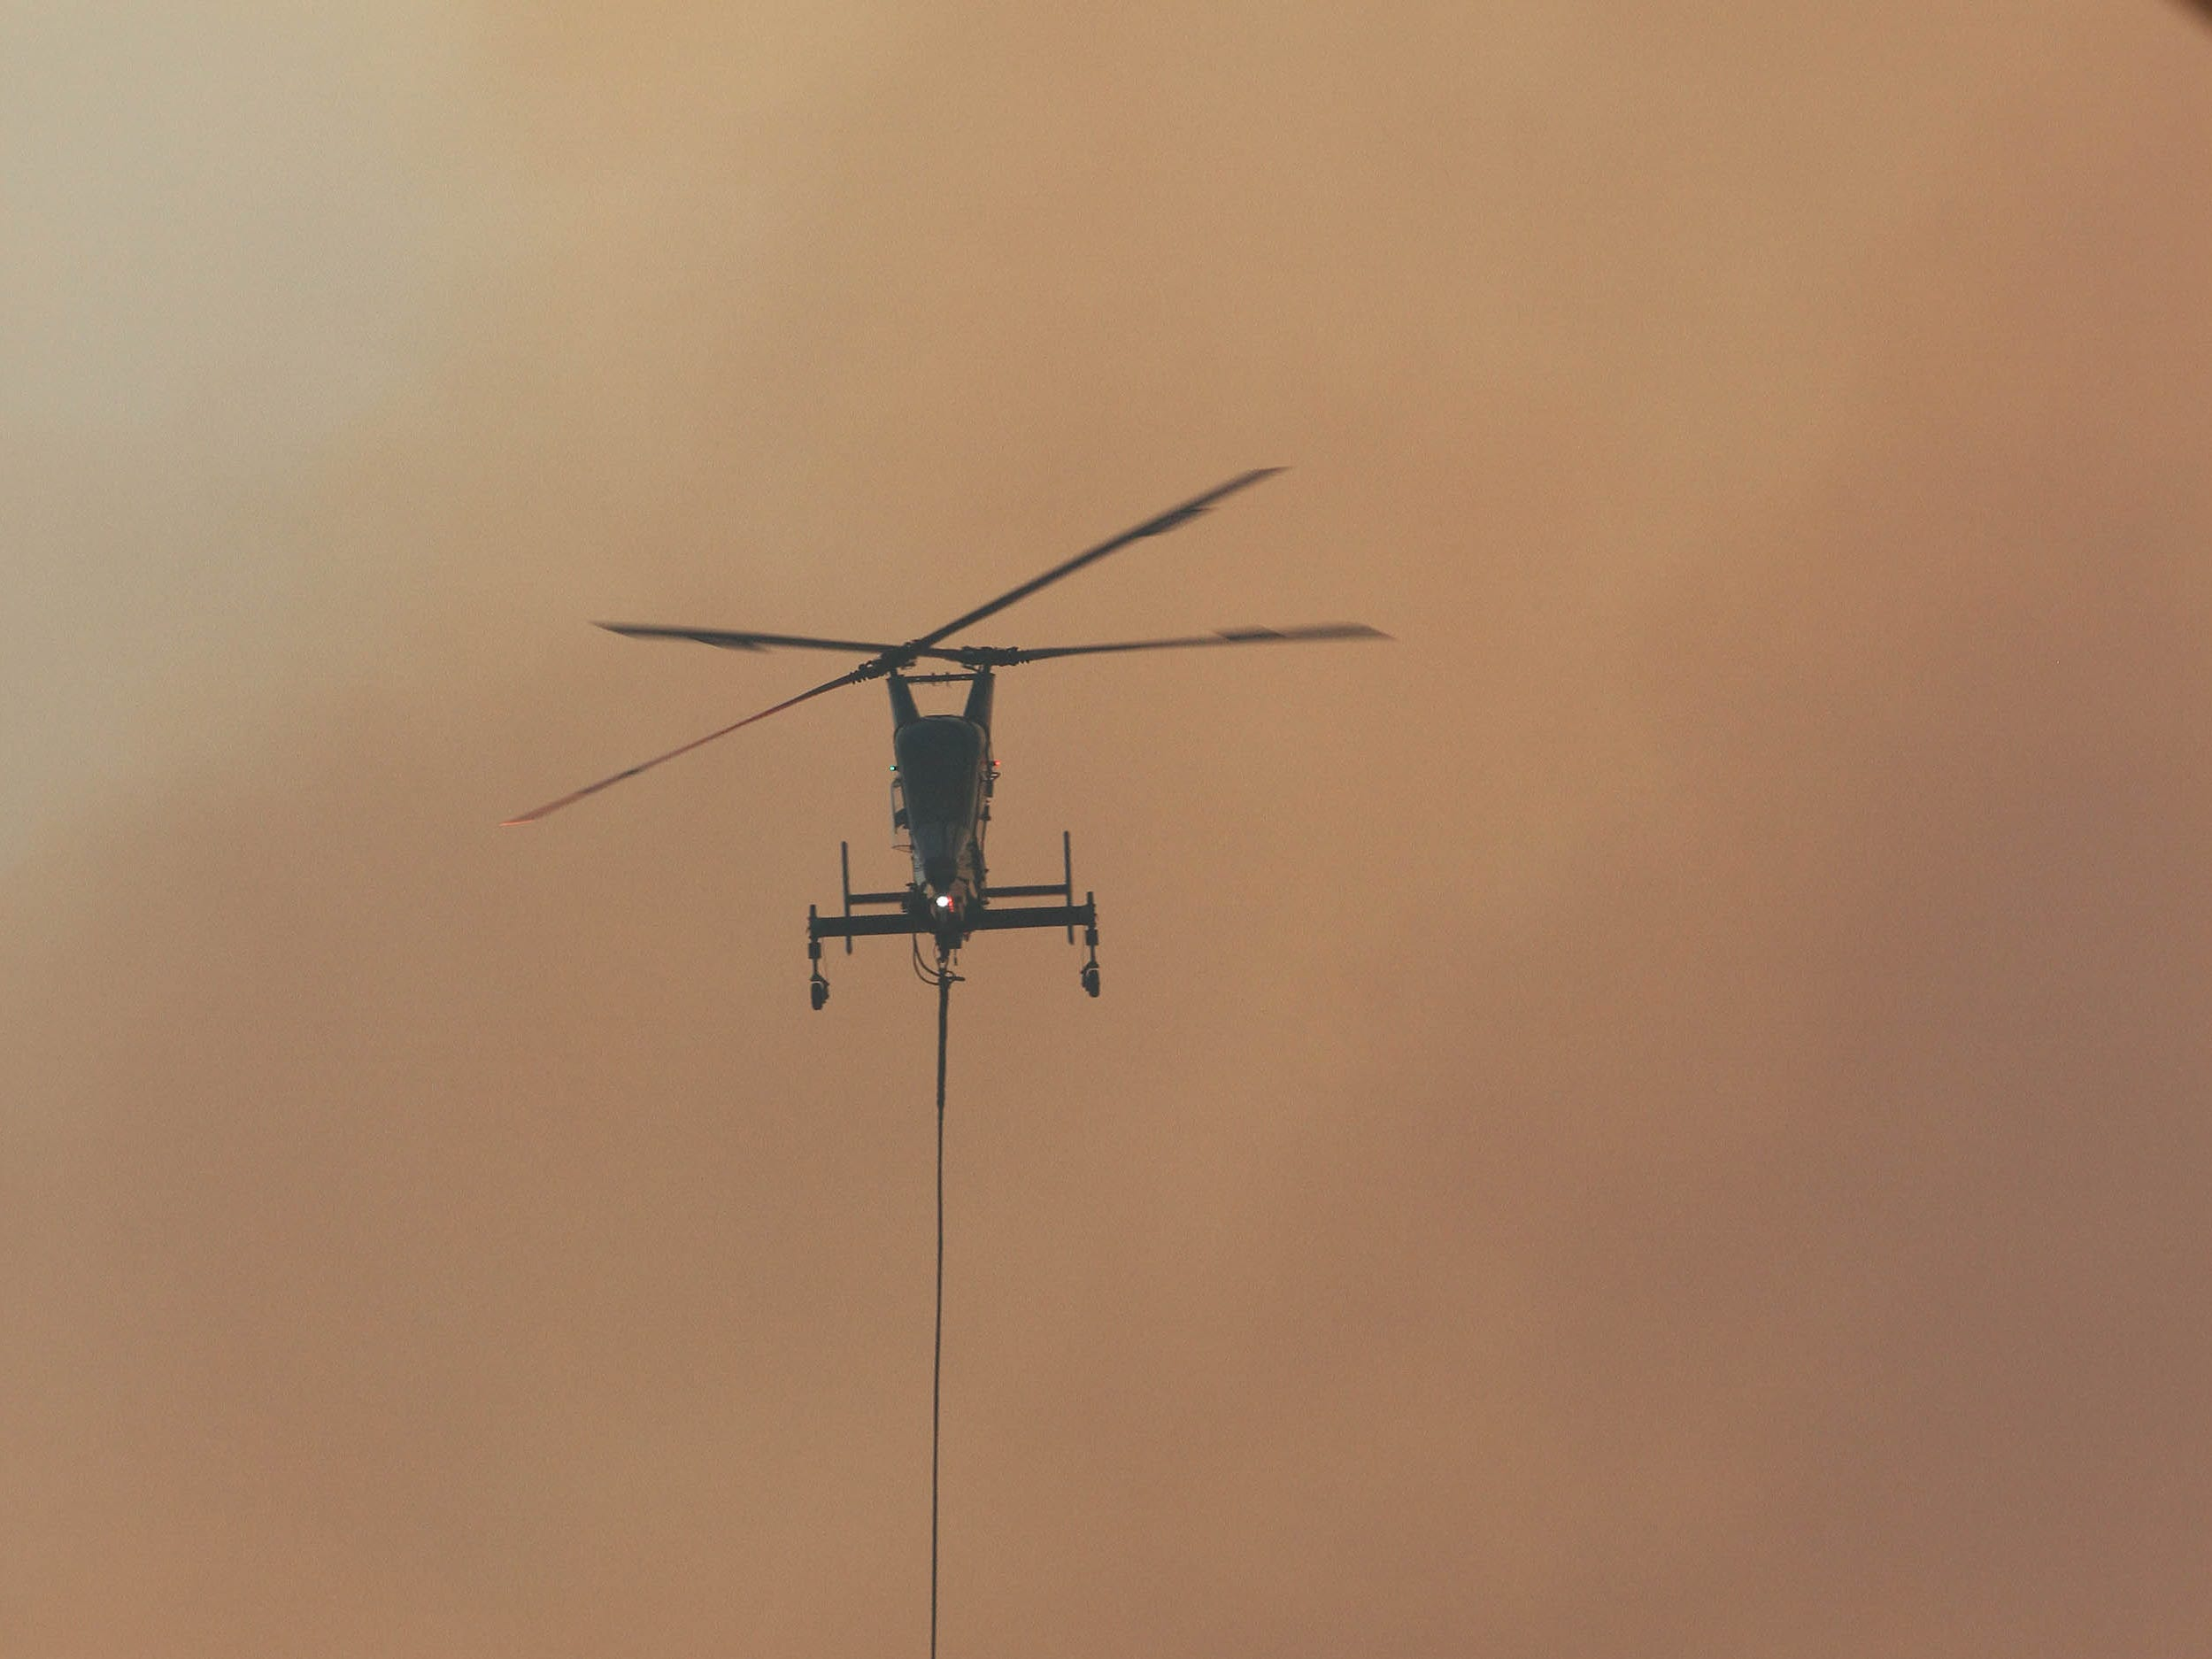 The Delta Fire flared up again Saturday night, Sept. 8, 2018 in the area of Dog Creek Road and Vollmers exit east of Interstate 5. Helicopters circling above dropped water at the top of the ridge line. (Hung T. Vu/ Special to the Record Searchlight)